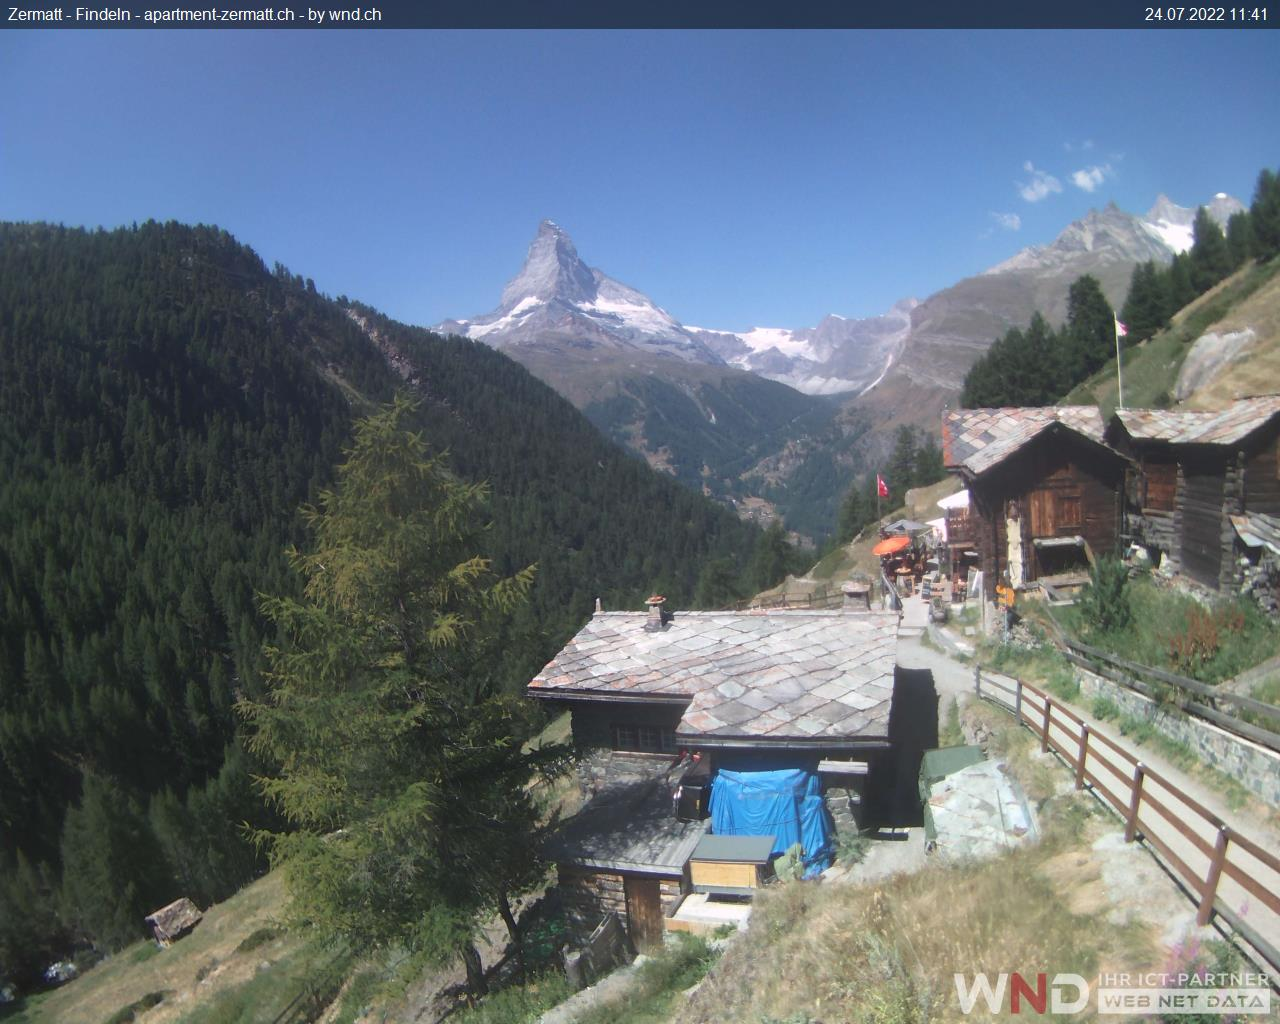 Zermatt: Webcam Findeln